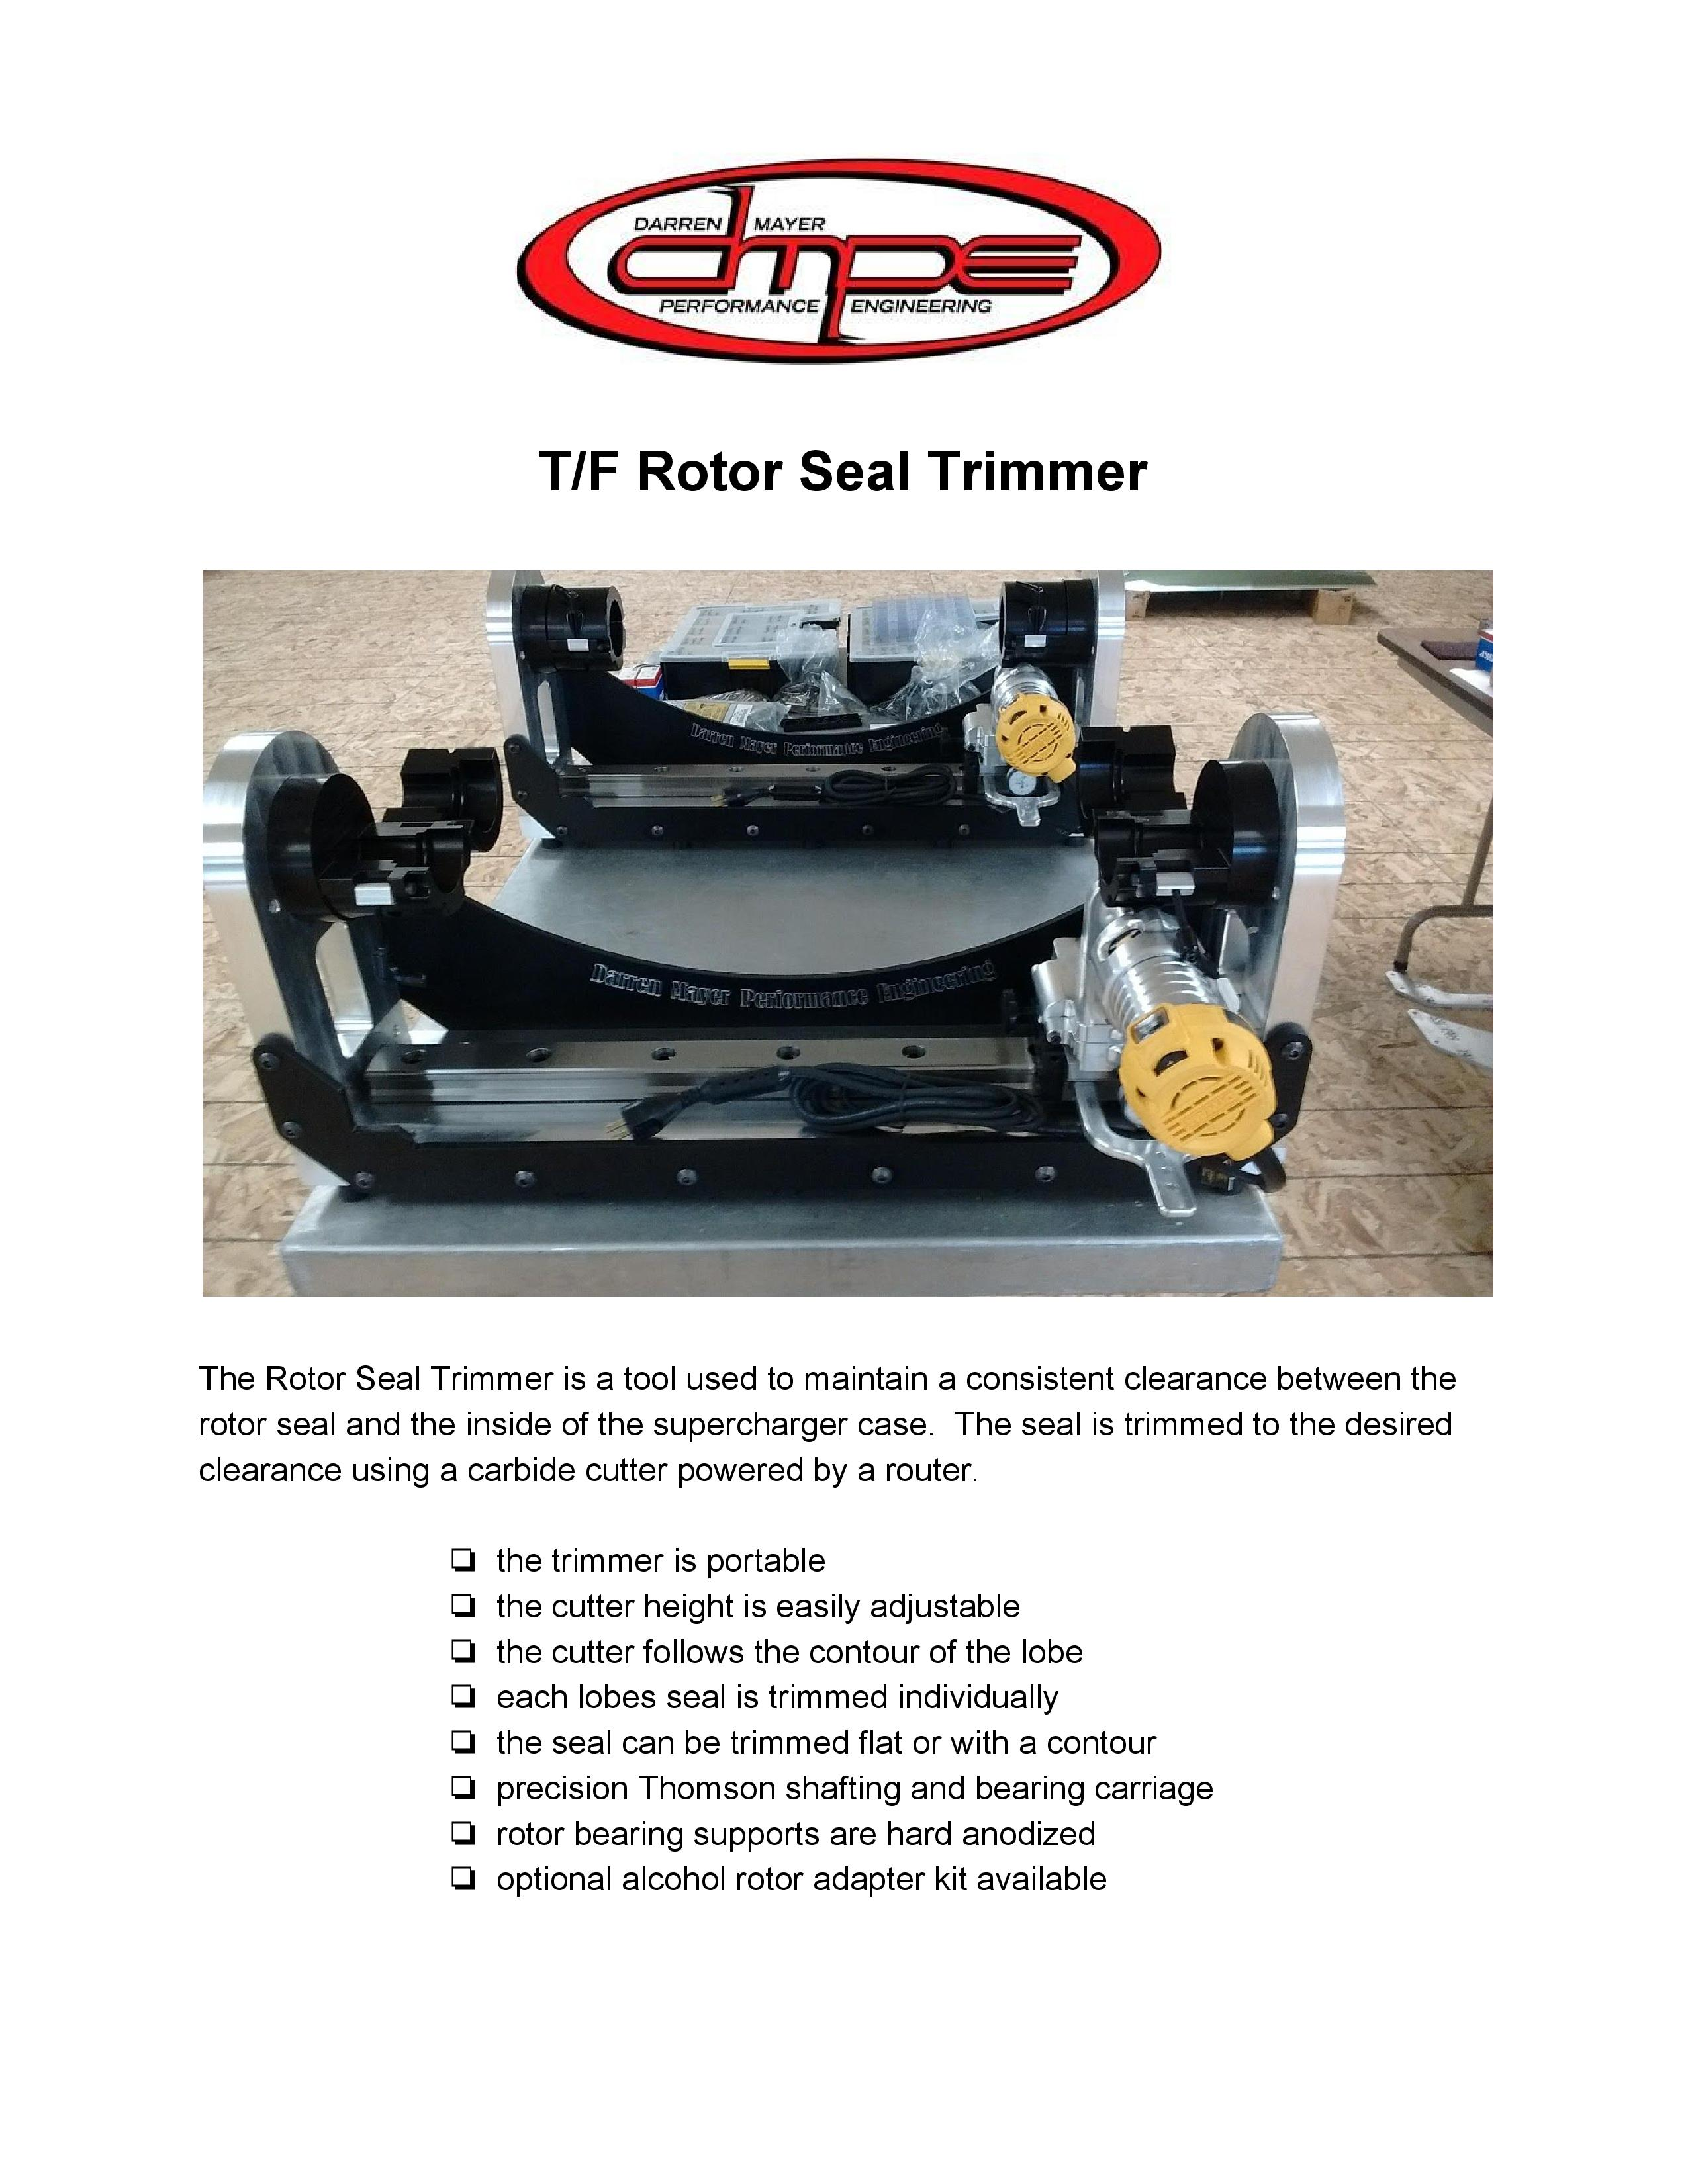 rotor-seal-trimmer-page-001.jpg